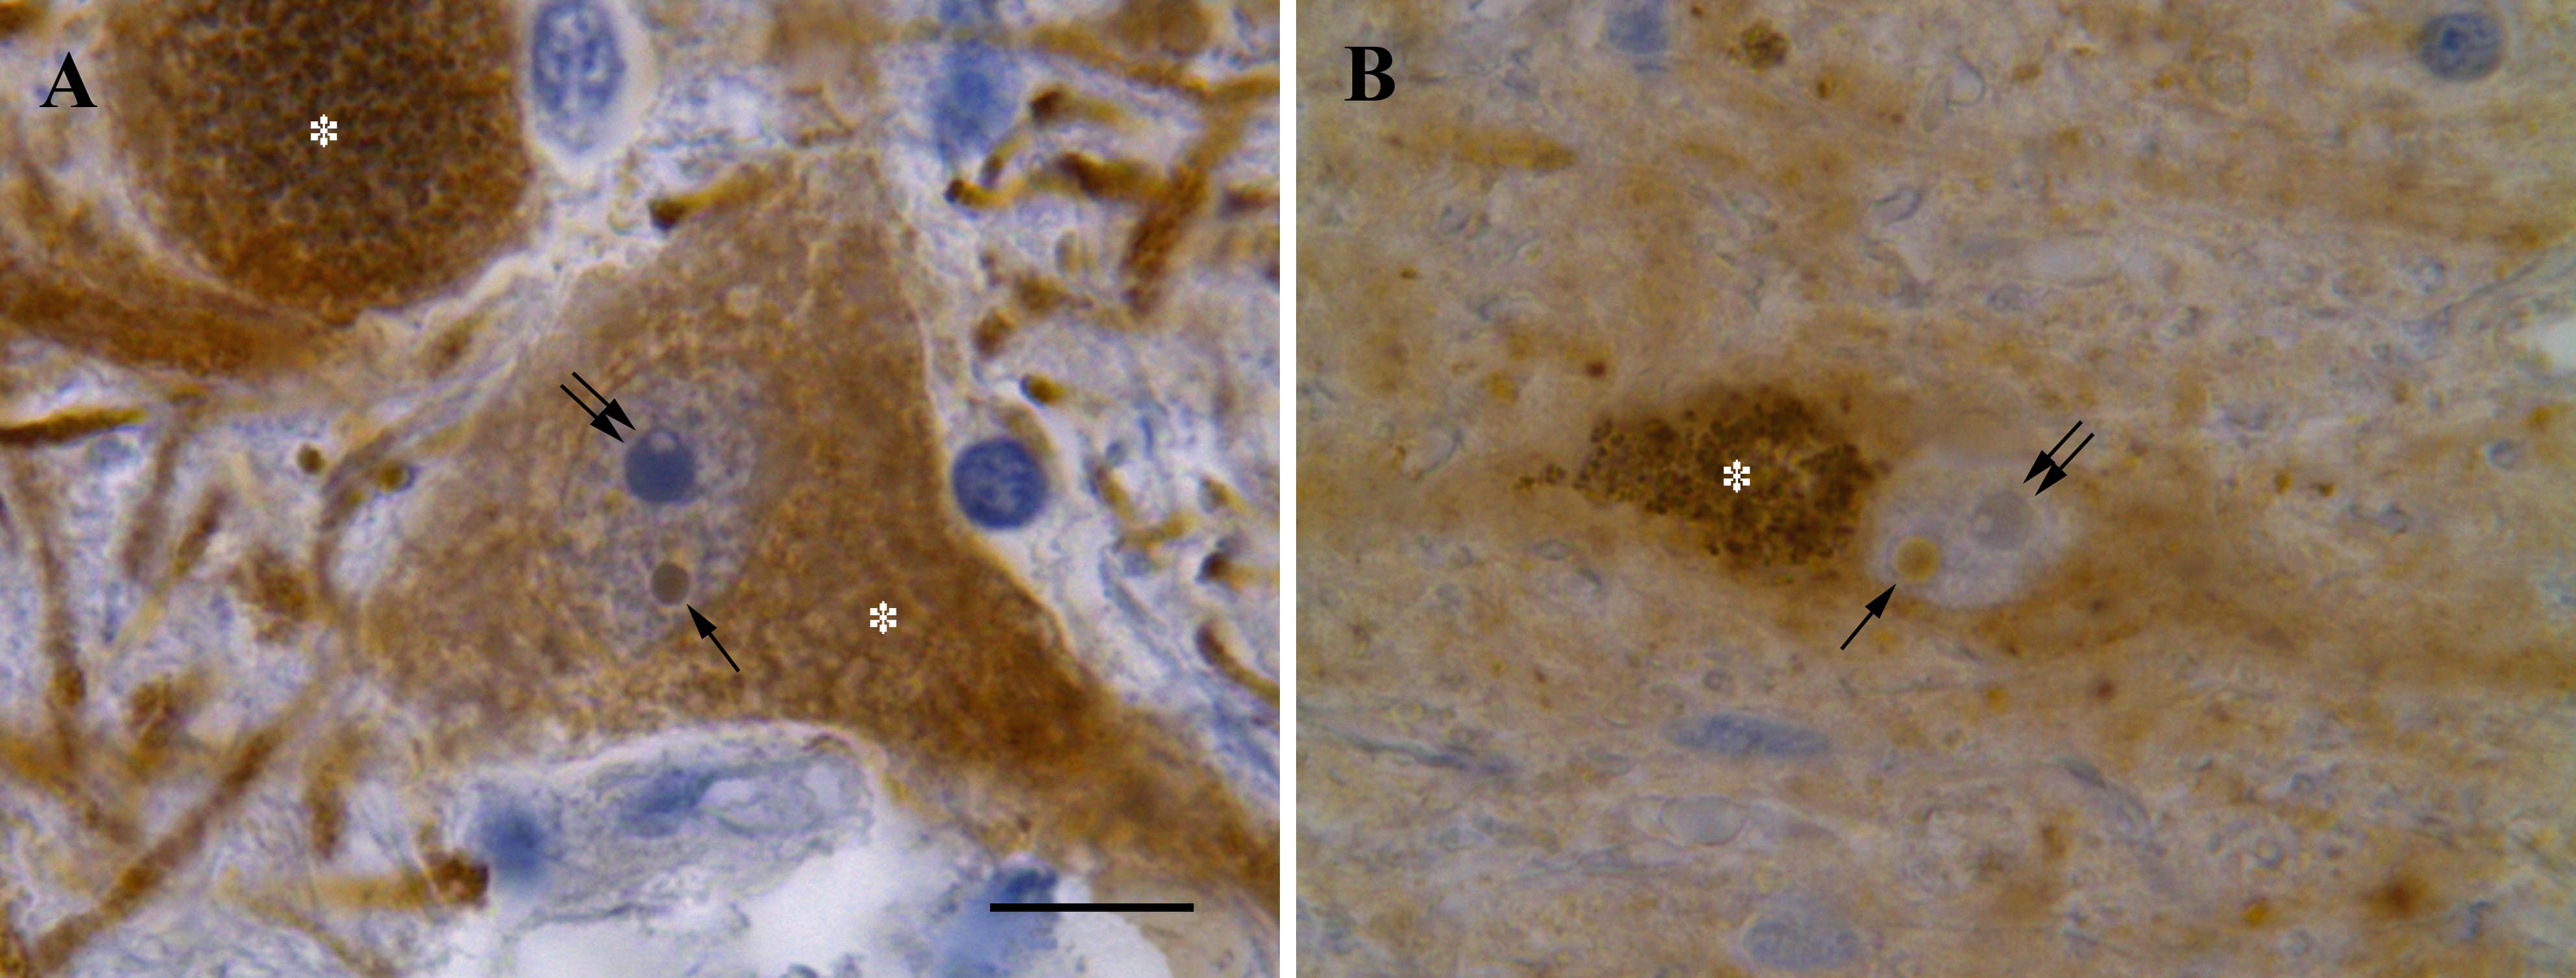 Figure 4. Marinesco bodies in melanized neurons of the human substantia nigra pars compacta. A) Intensive tyrosine hydroxylase-immunoreactivity (brown) is distributed mostly in the cytoplasm of a neuron and many processes. The neuronal nucleus exhibits weak tyrosine hydroxylase-immunoreactivity with exception of a pronounced immunohistochemical reaction in the round Marinesco body-like structure (single arrow). Nucleolus (double arrow) is devoid of tyrosine hydroxylase-immunoreactivity. Asterisk (*) indicates neuromelanin accumulation in the neuronal cytoplasm. B) Intensive nitric oxide synthase-immunoreactivity (brown) is seen predominantly in the cytoplasm of a neuron with many neuromelanin granules (asterisk). The neuronal nucleus is mostly immunonegative with only one nitric oxide synthase-immunoreactive round Marinesco body-like structure (single arrow). Note a homogeneously stained core and a pale perimembranous halo. Double arrow indicates nucleolus. Counterstaining with hematoxylin. Bar scale – 10 µm.